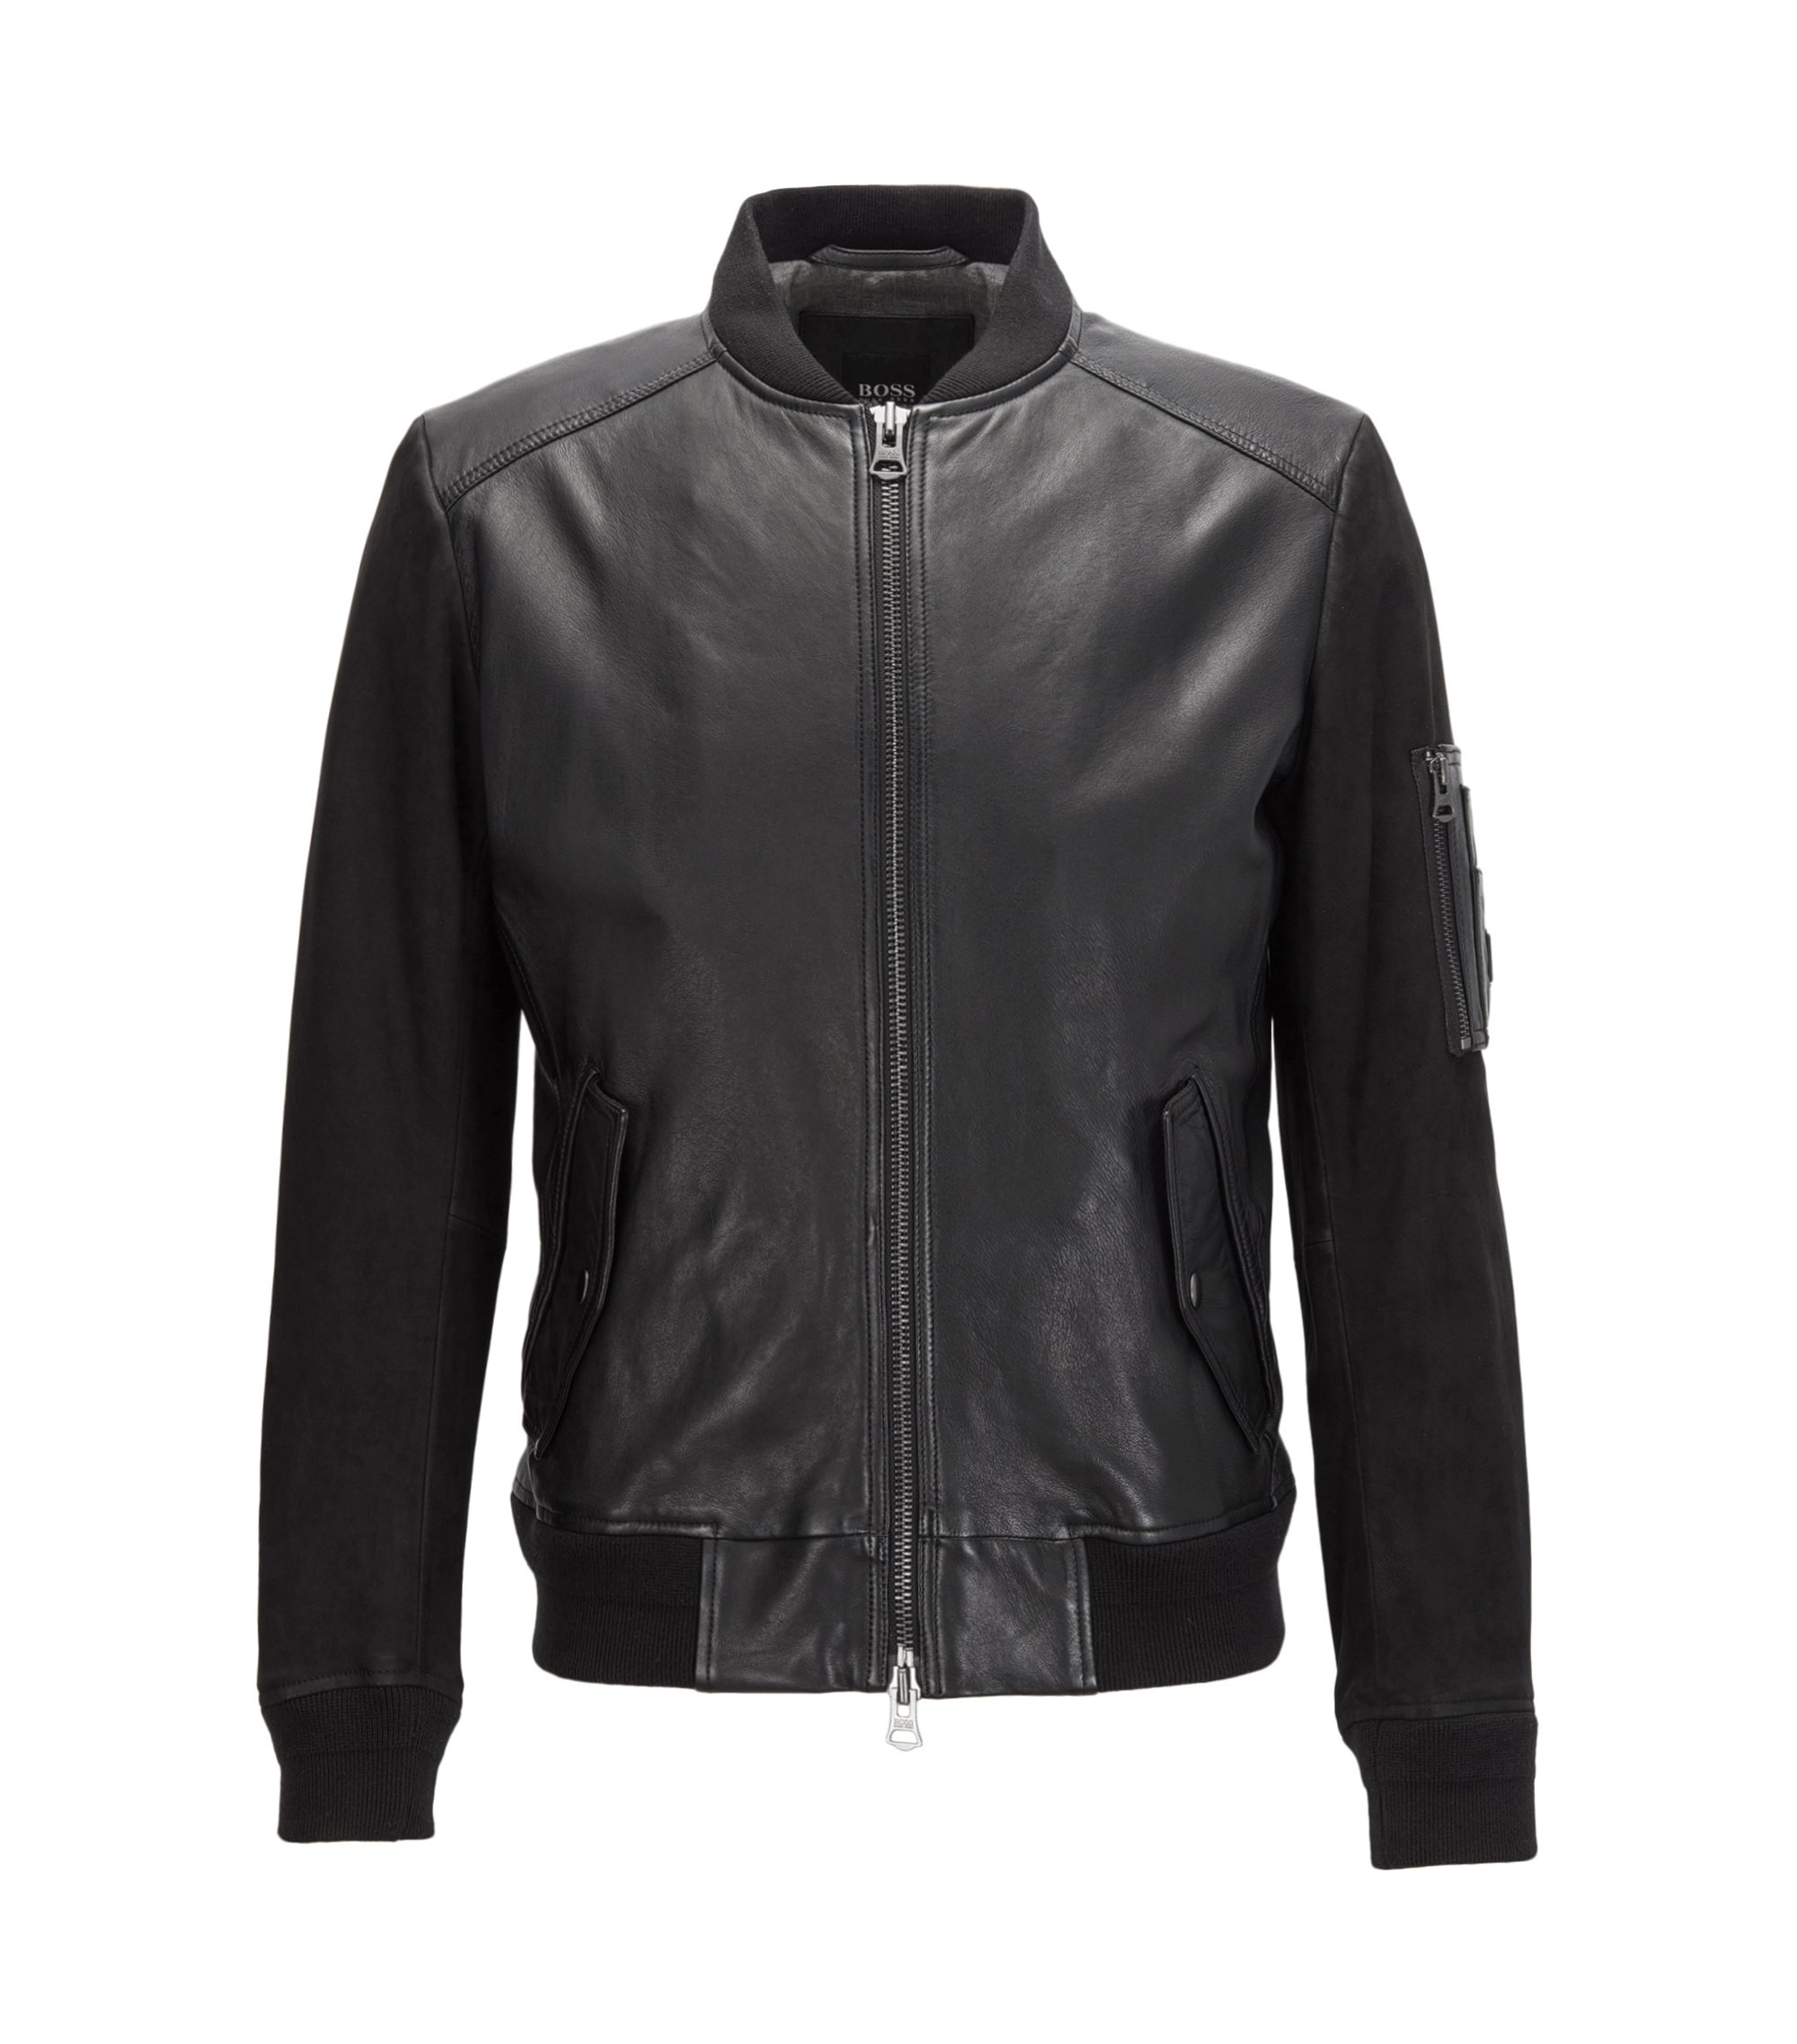 Sheepskin Leather Bomber Jacket | Jixx, Black